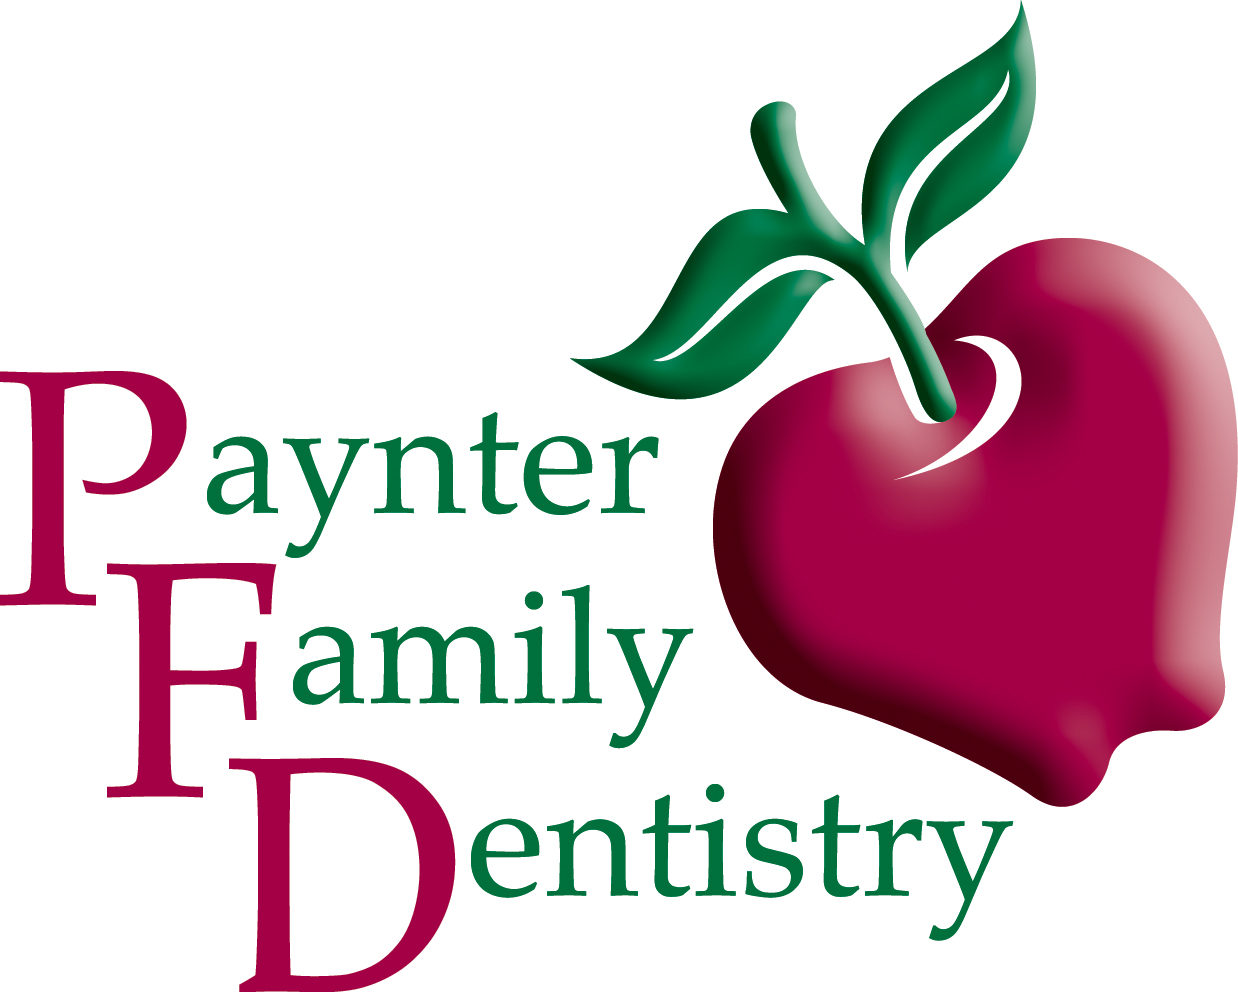 PAYNTER FAMILY DENTISTRY